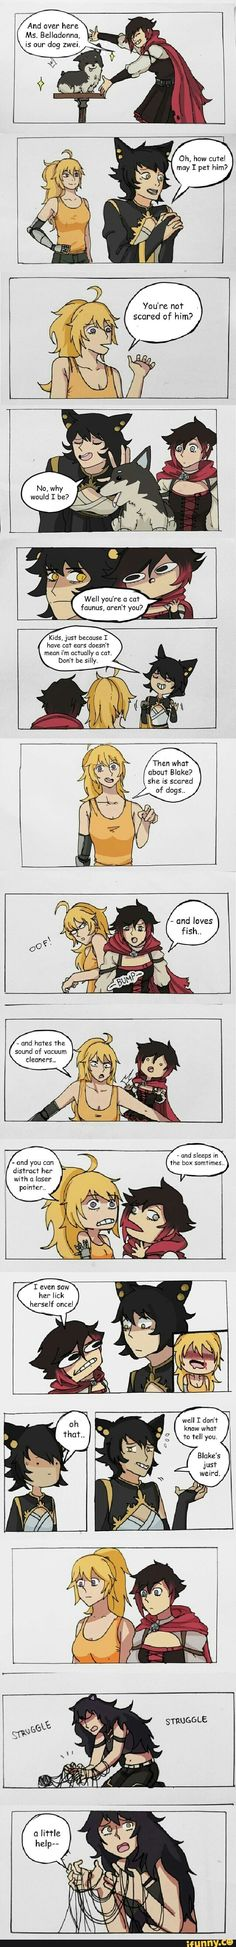 That Yang nosebleed tho xD Geeks, Red Like Roses, Rwby Memes, Rwby Characters, Rwby Red, Rwby Comic, Rwby Ships, Achievement Hunter, Team Rwby